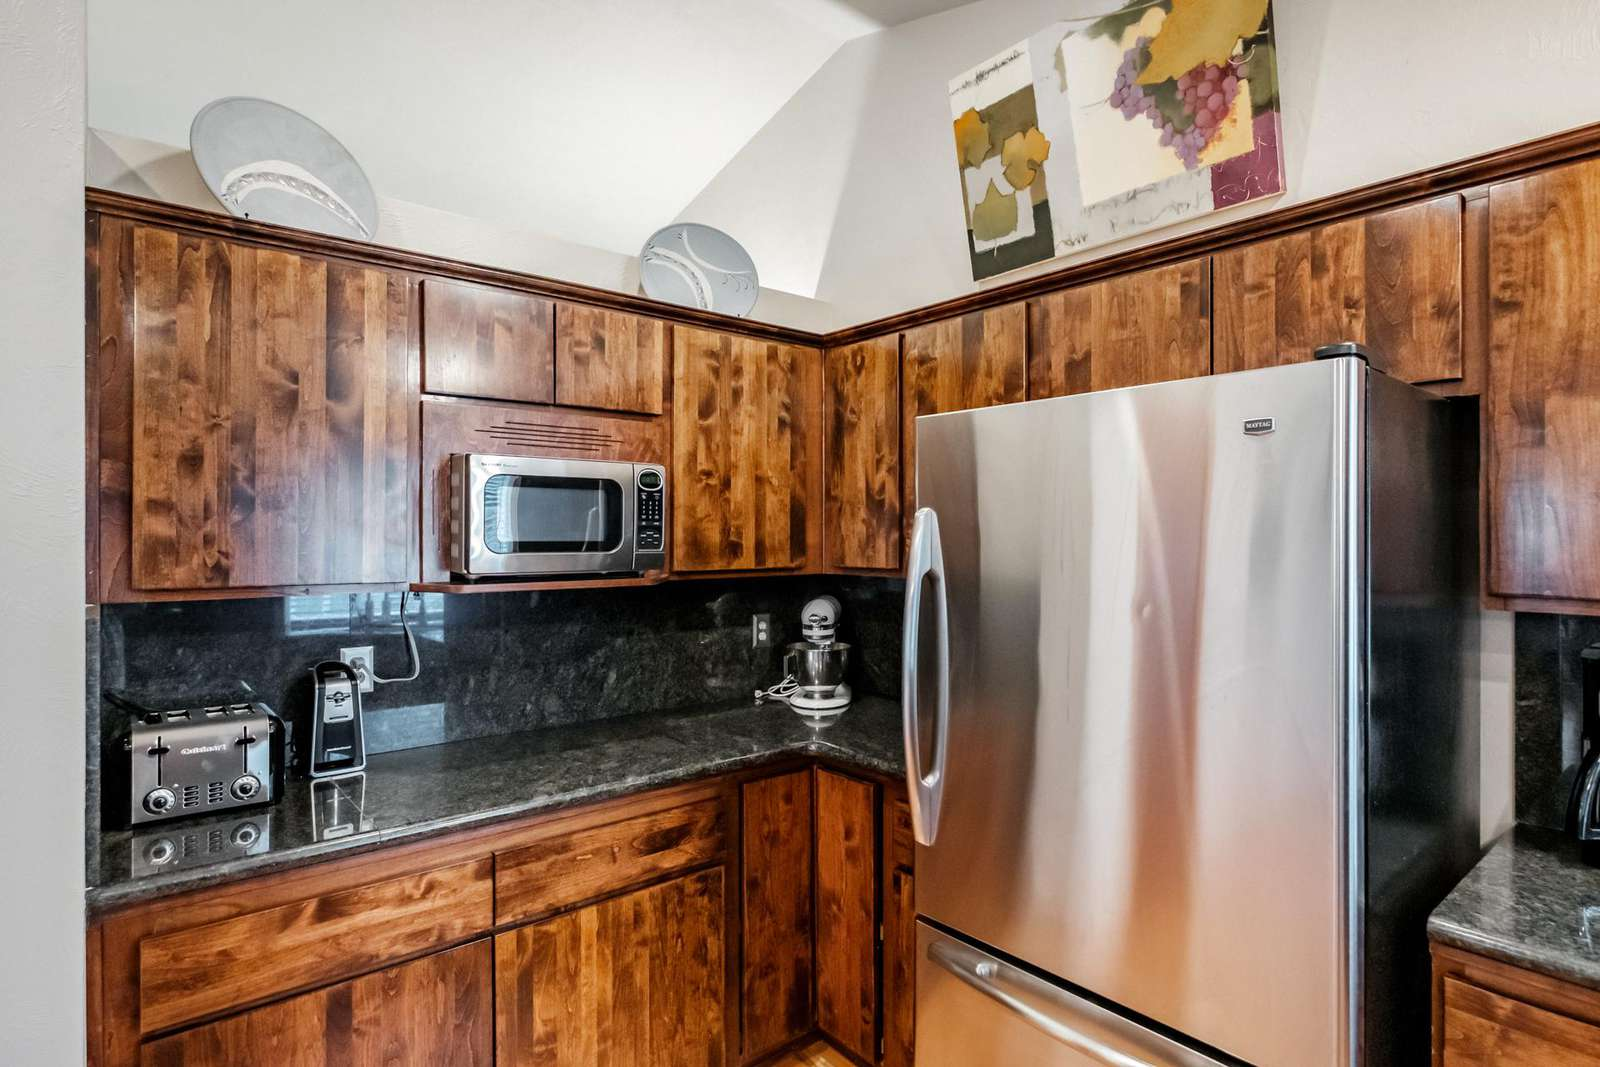 New appliances in the kitchen -- Storage galore too!